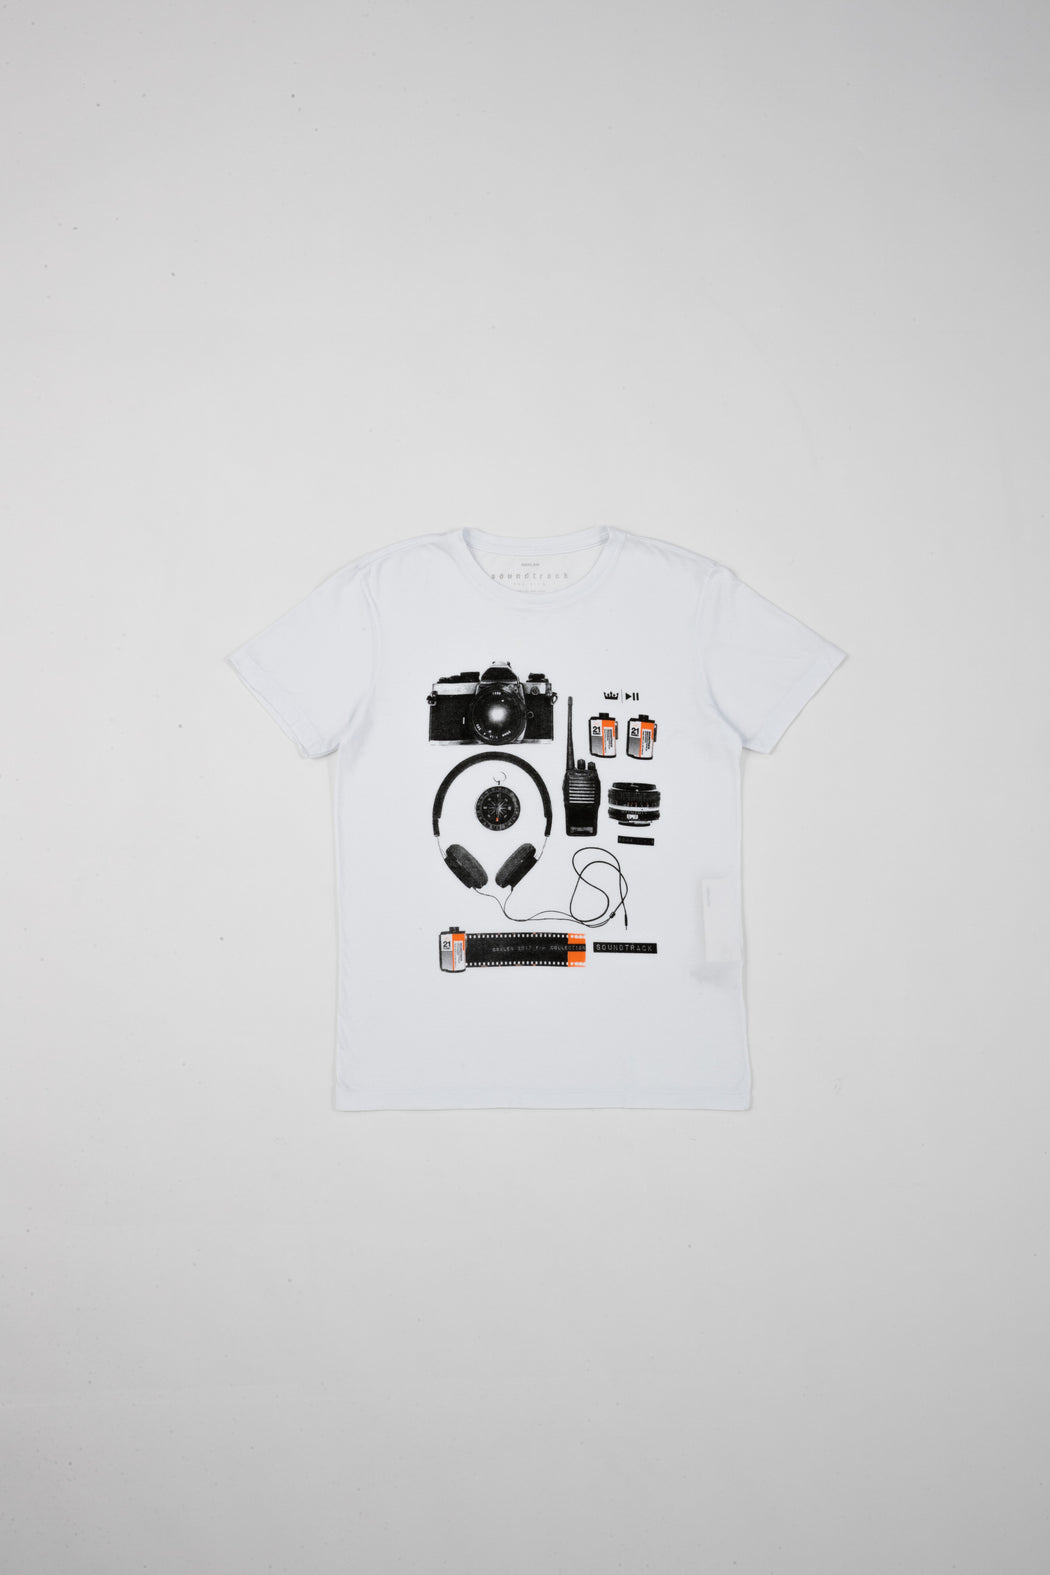 STONE VINTAGE SOUNDTRACK GEARS T-SHIRT